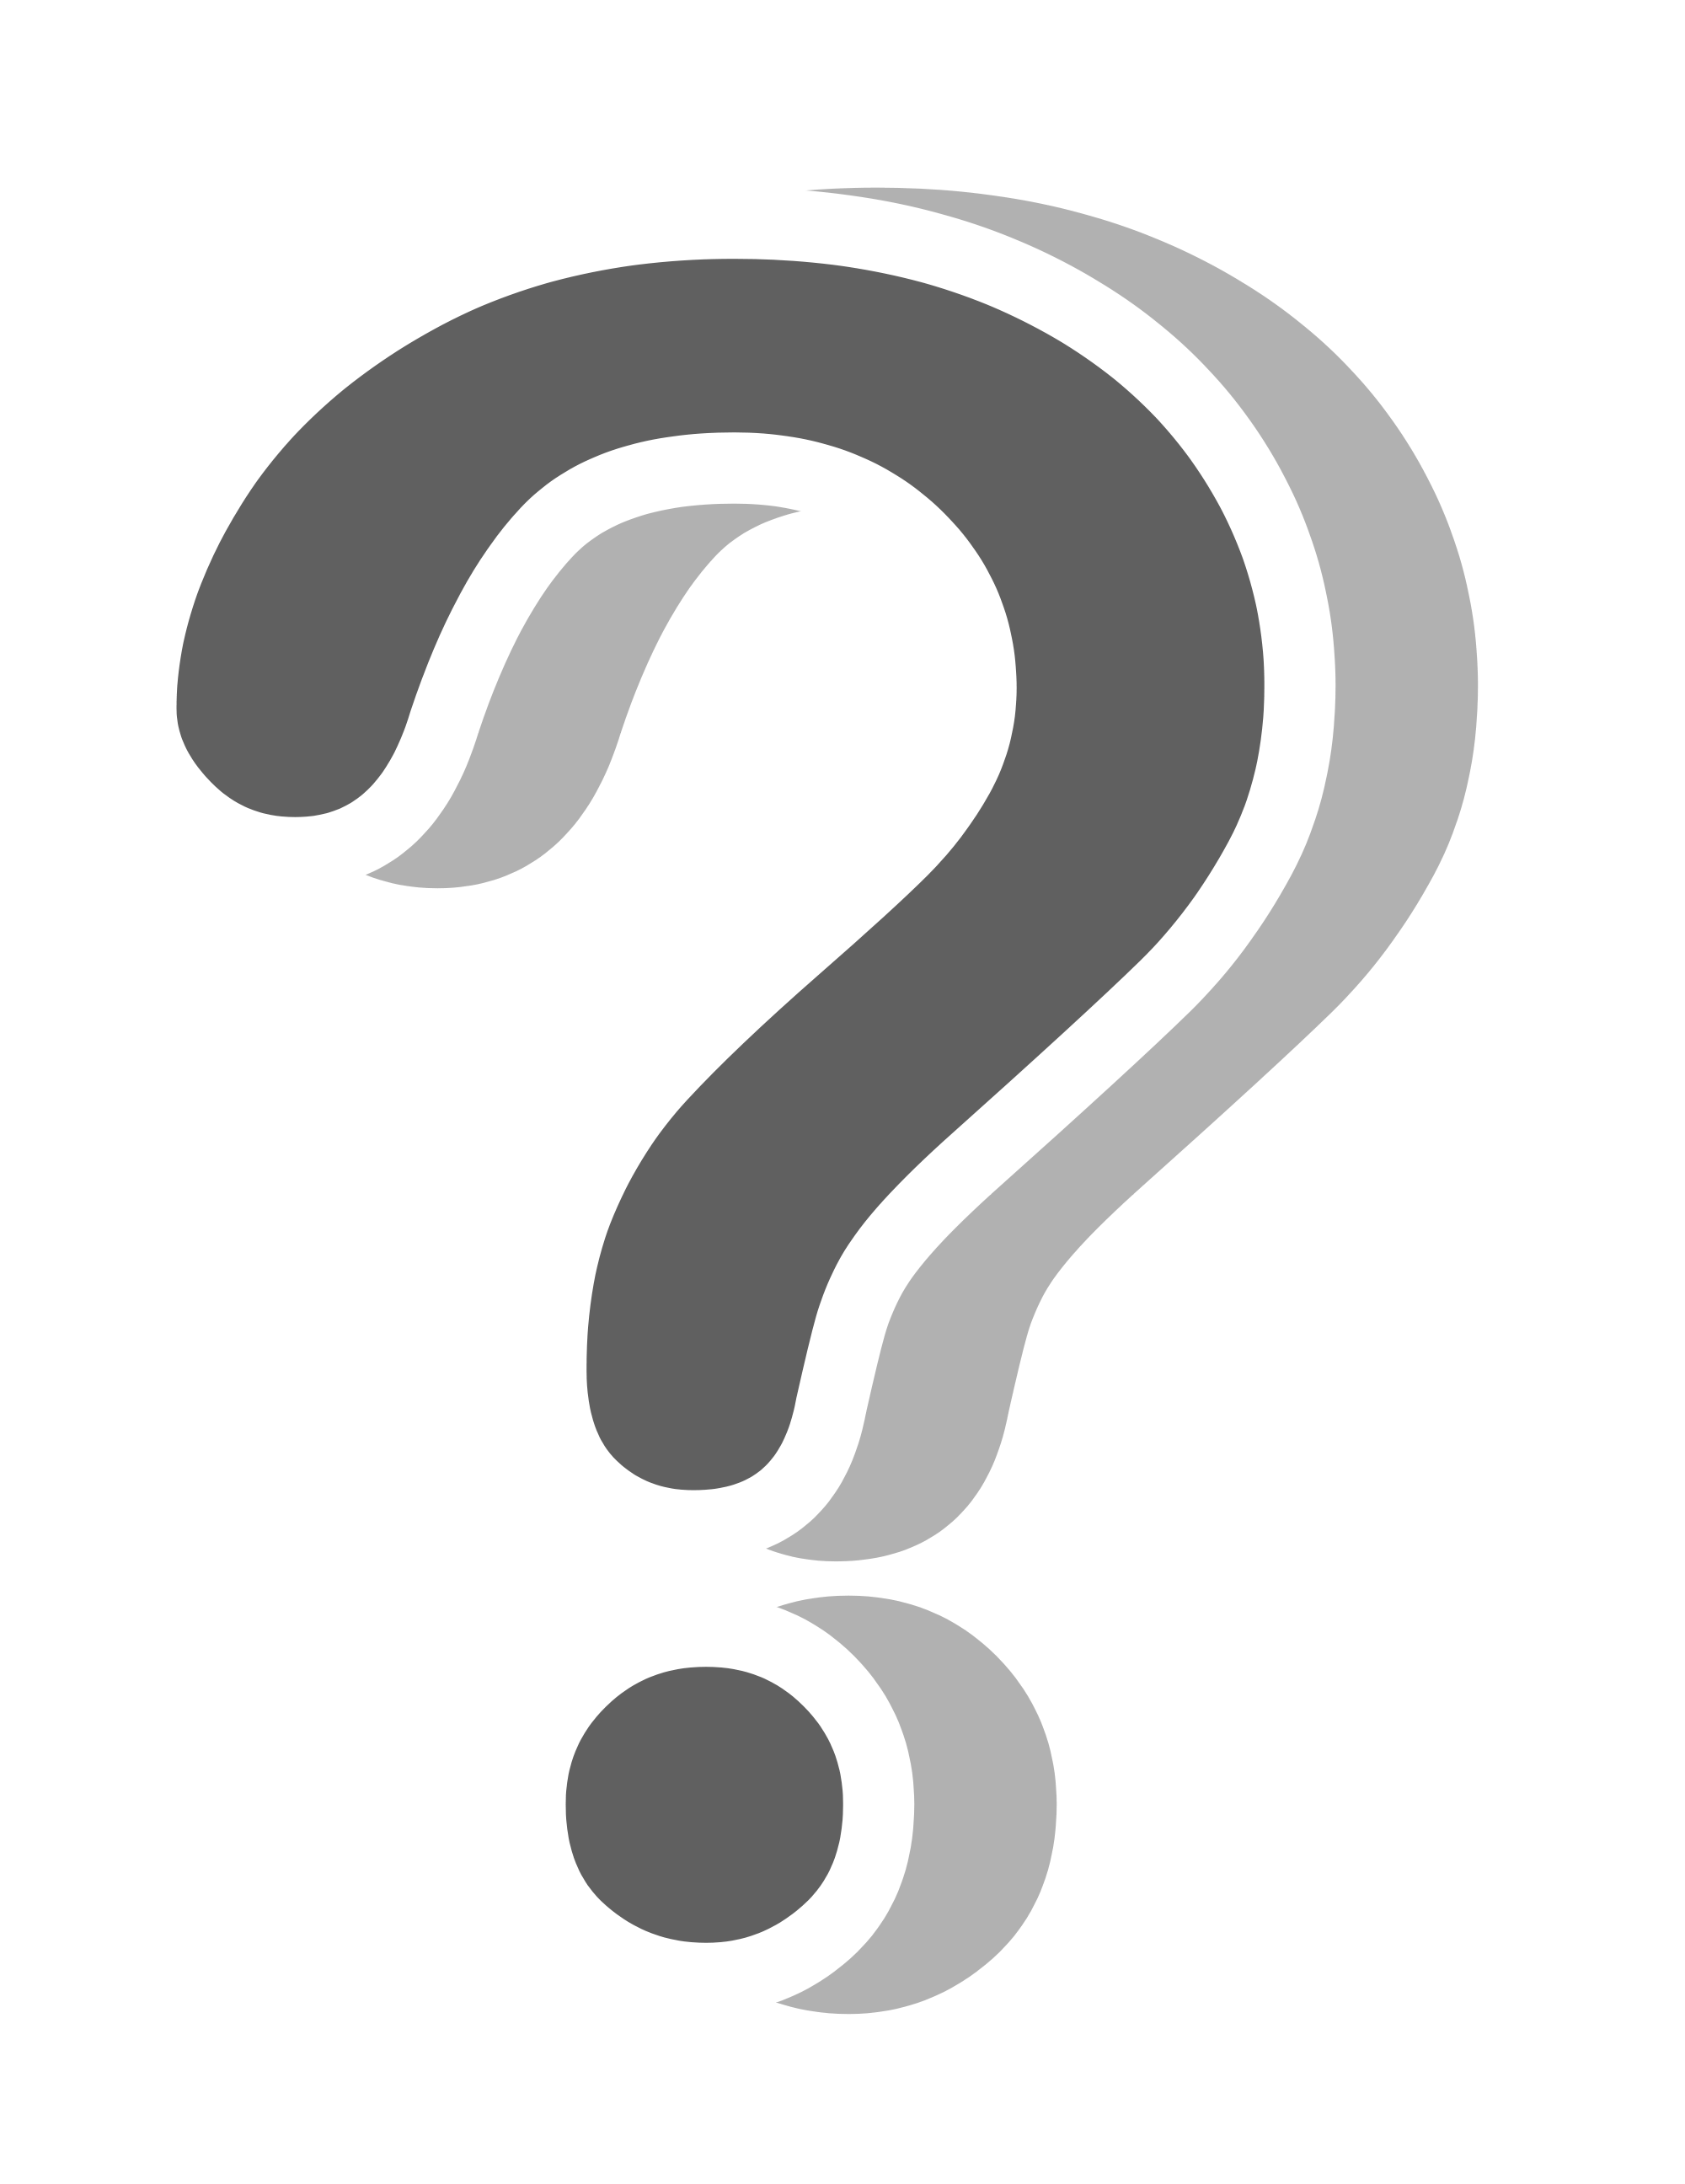 Sticker transparent stickpng download. Question mark png white picture library stock